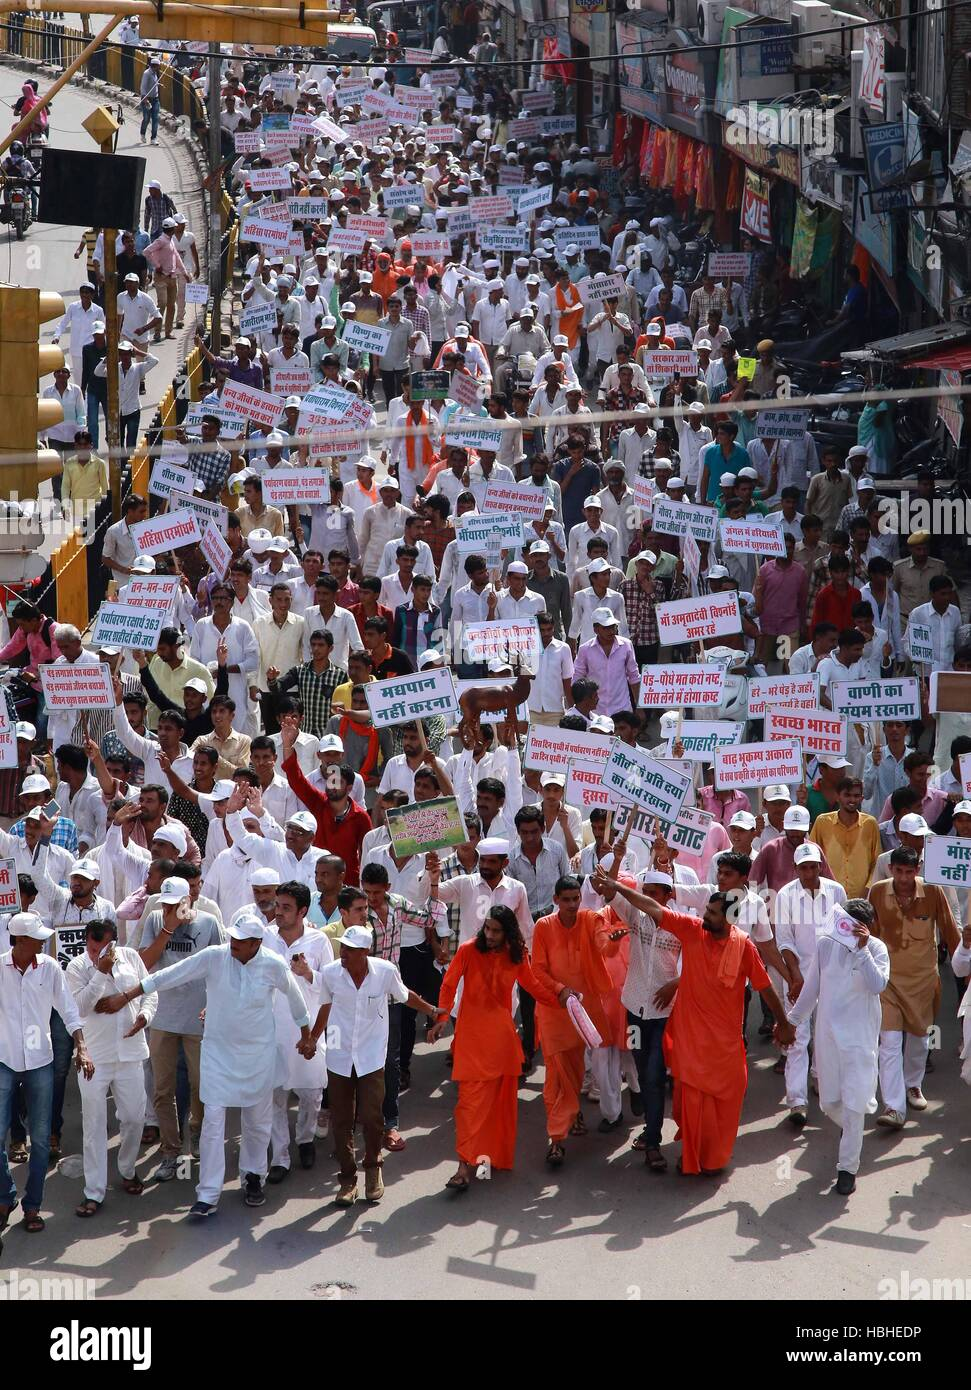 Members Bishnoi society placards silent really against Rajasthan High court acquittal Salman Khan Chinkara poaching - Stock Image